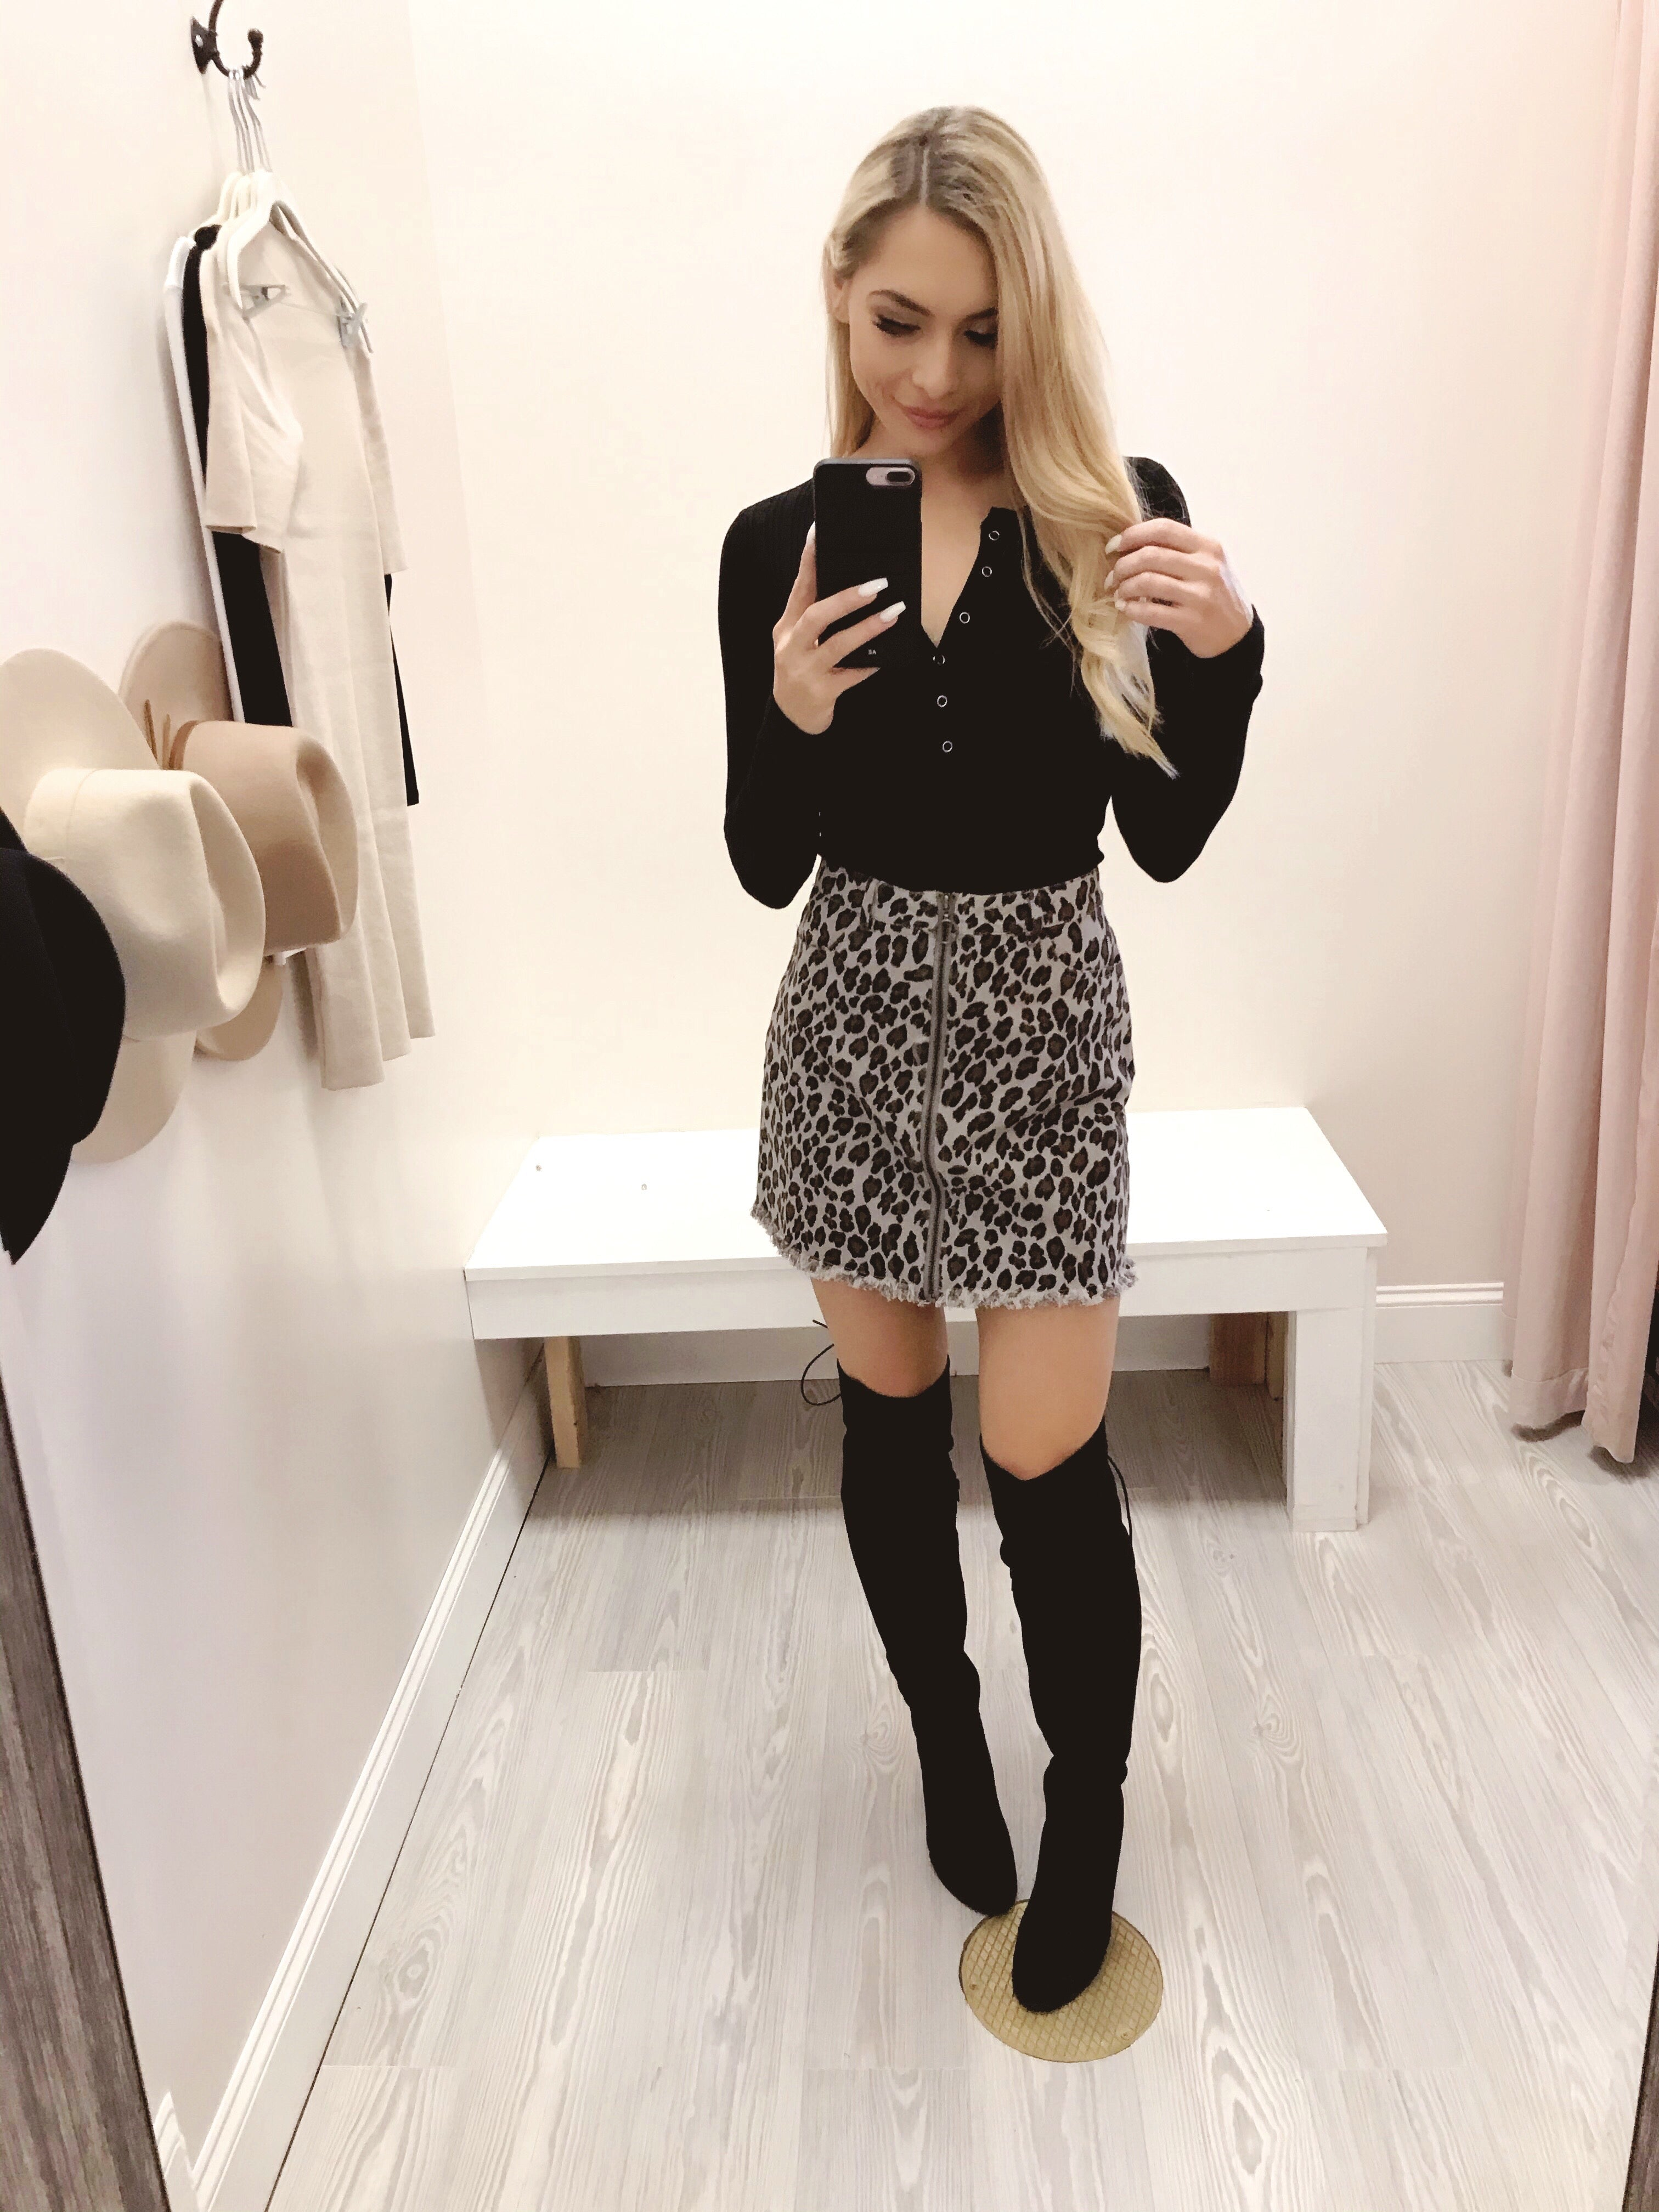 Brittany Leopard Skirt